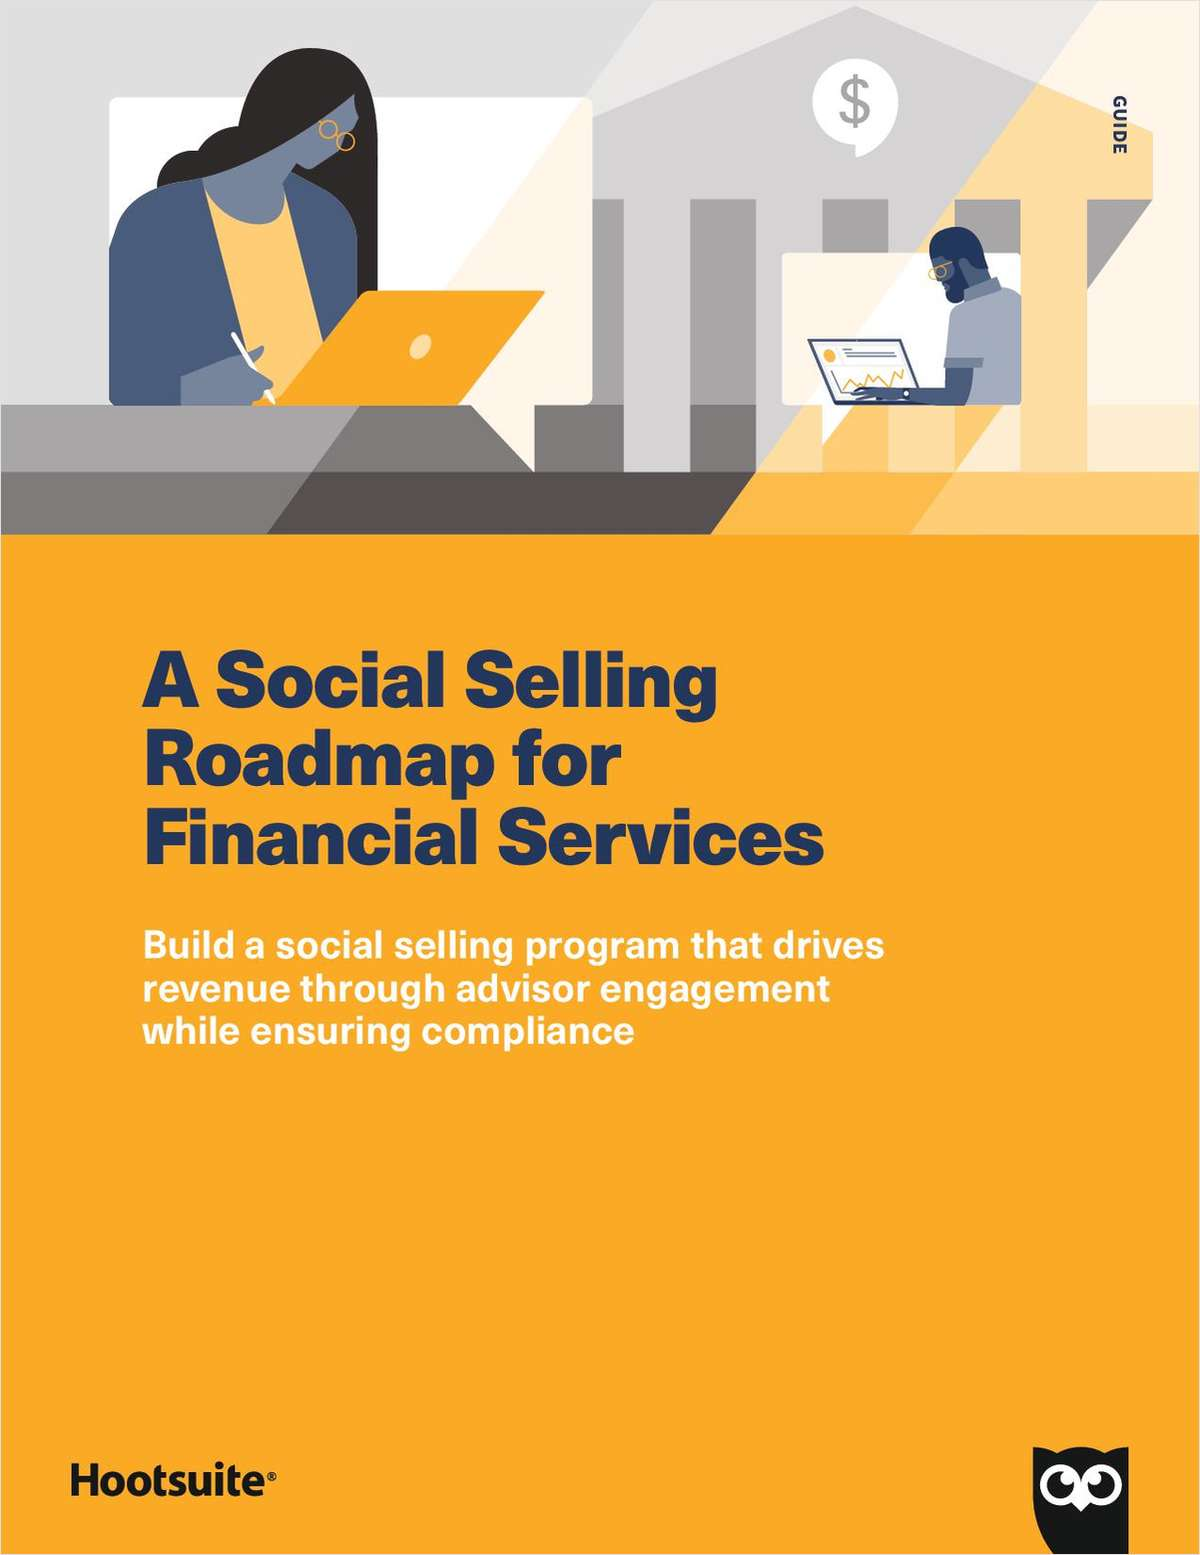 A Social Selling Roadmap for Financial Services